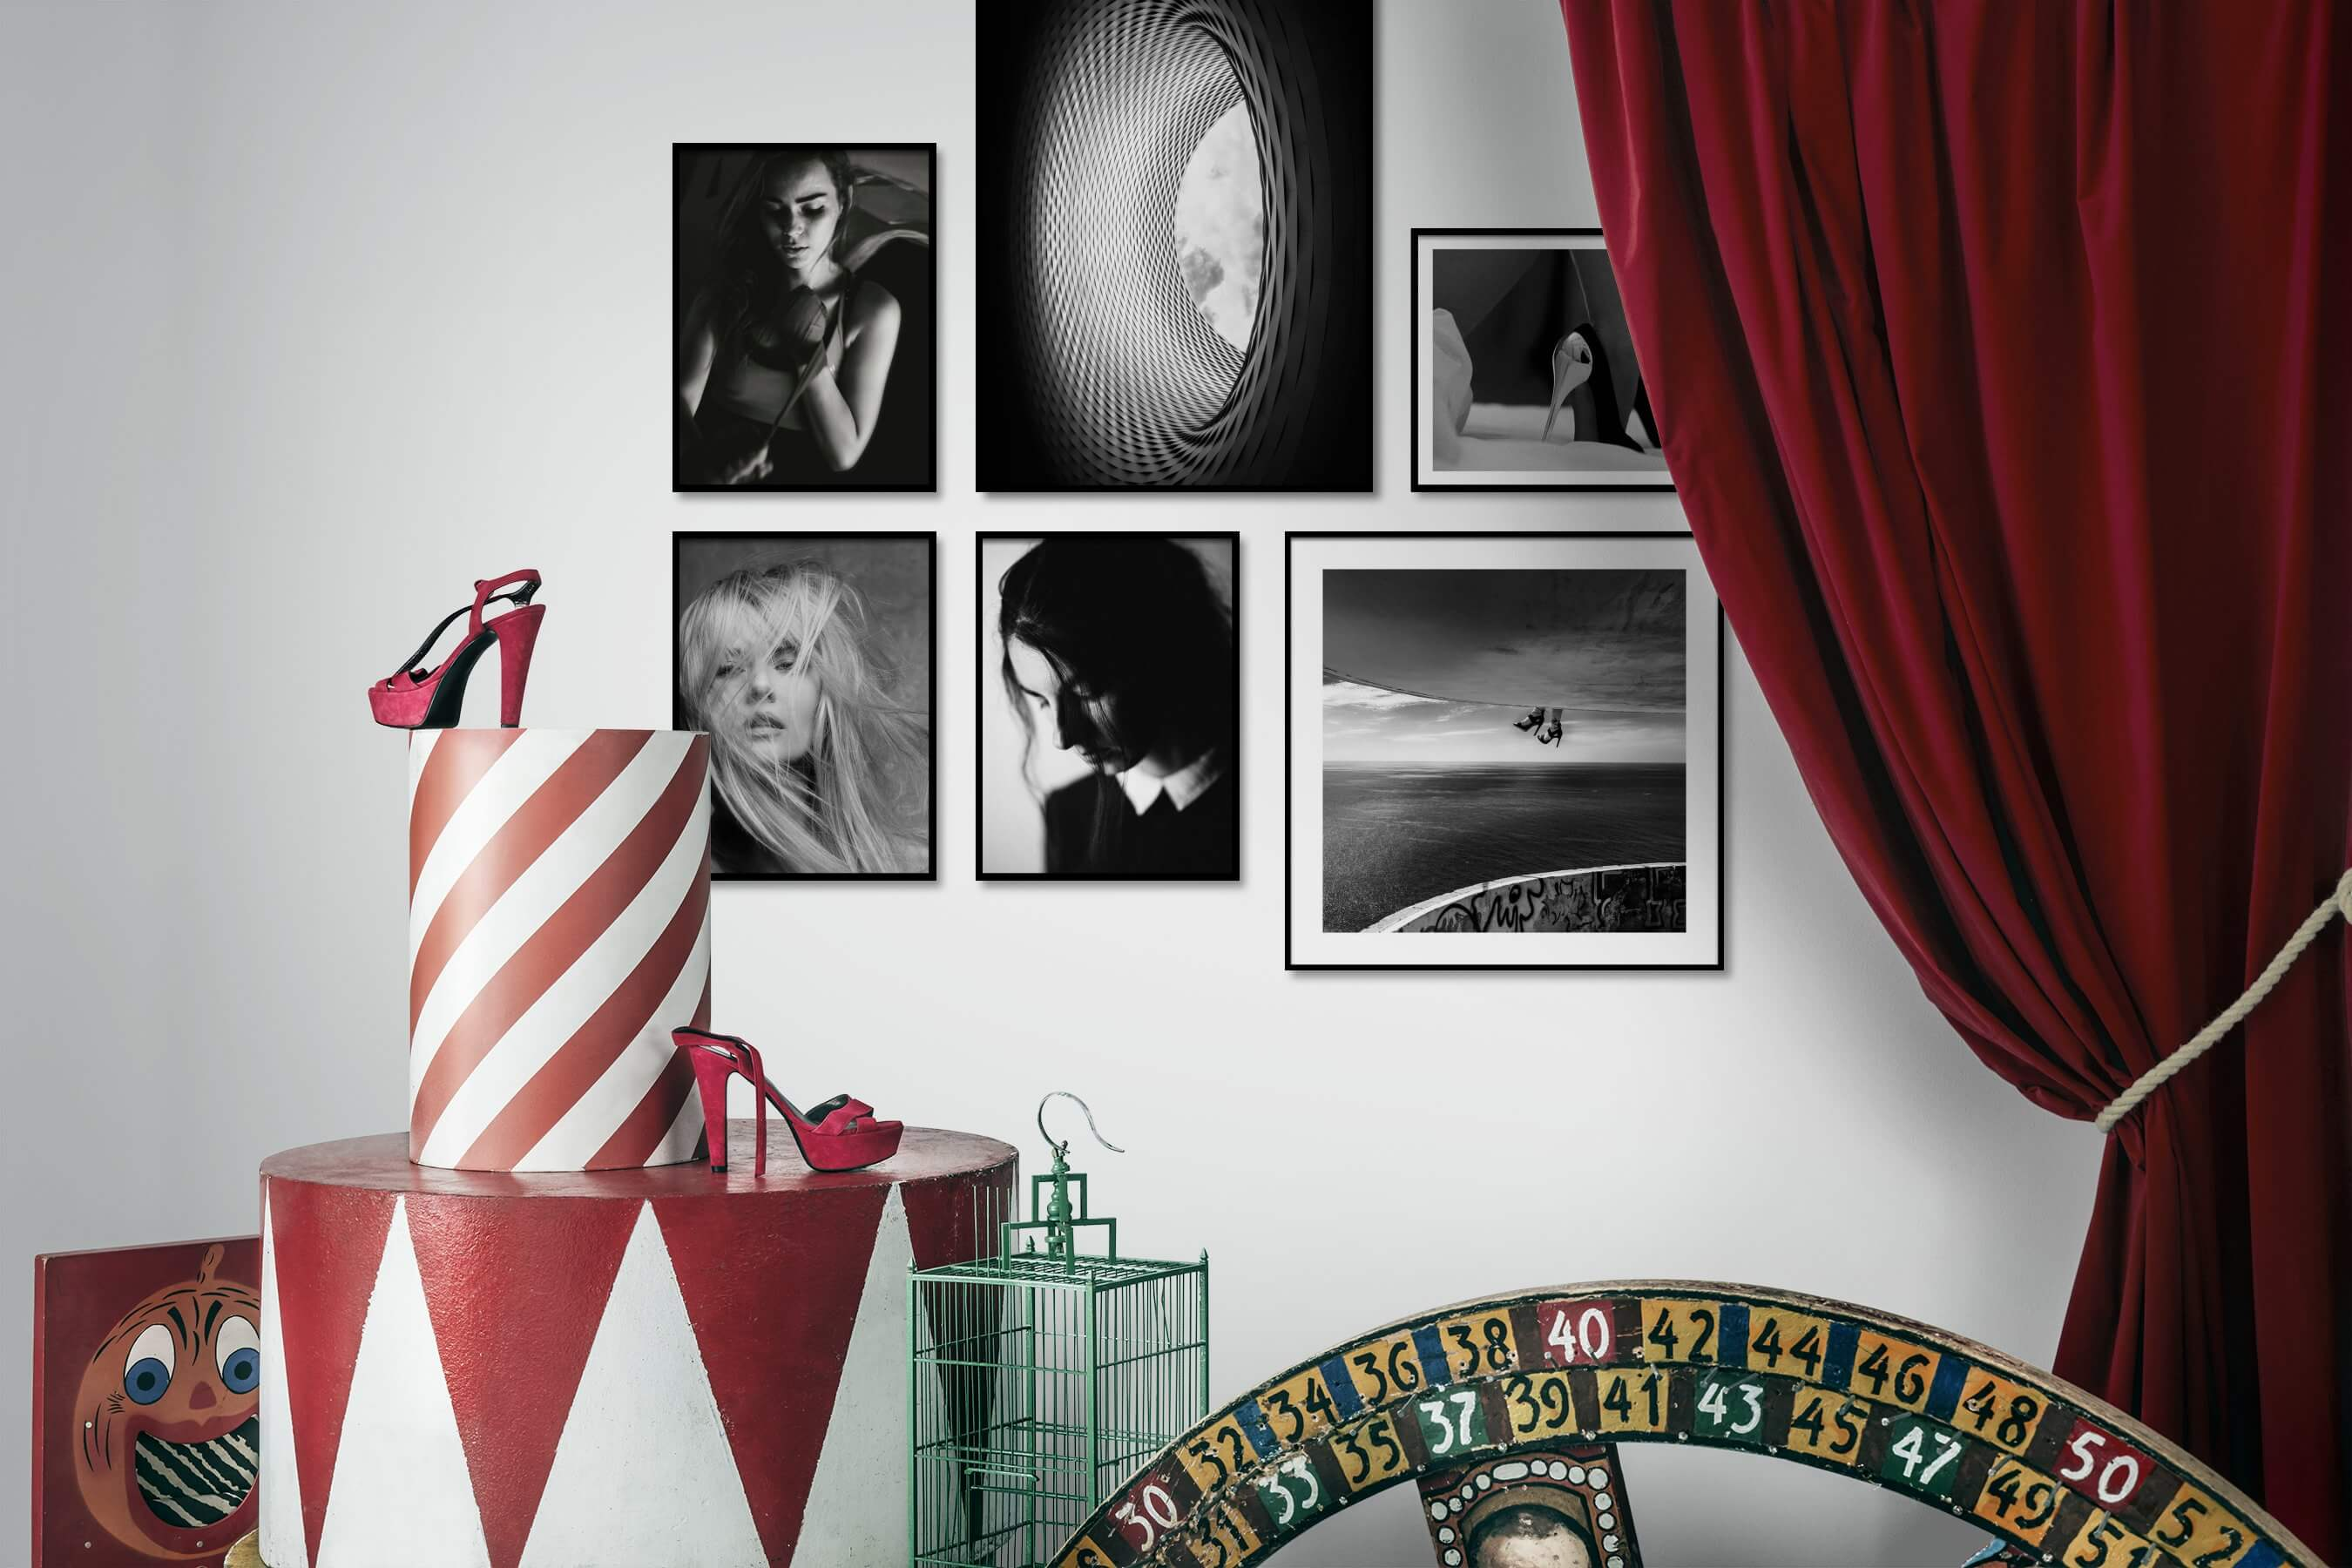 Gallery wall idea with six framed pictures arranged on a wall depicting Fashion & Beauty, Black & White, For the Maximalist, and Beach & Water